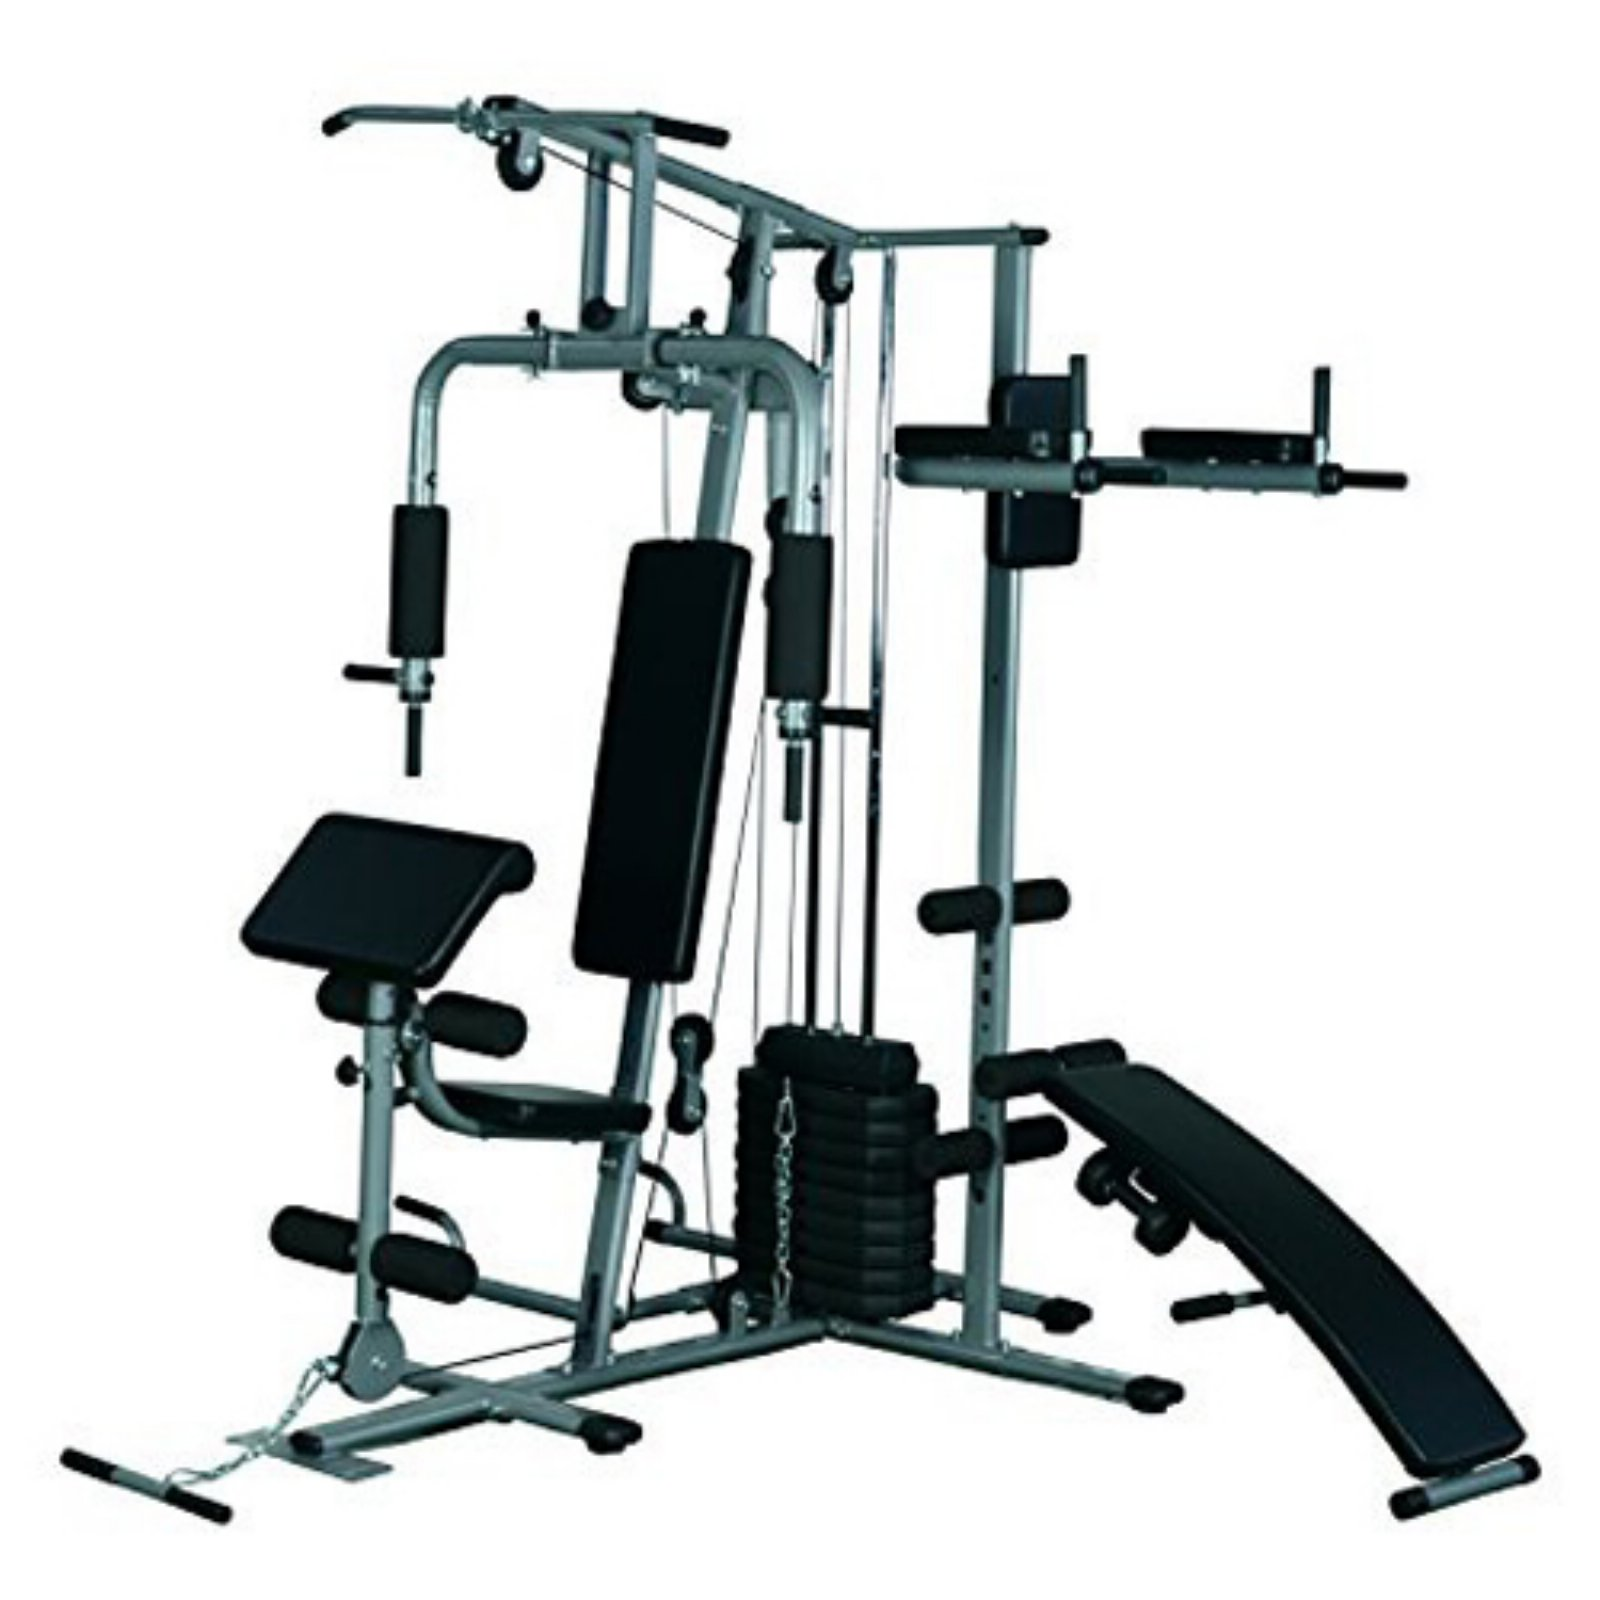 Soozier Complete Home Fitness Station with 100 lb. Stack